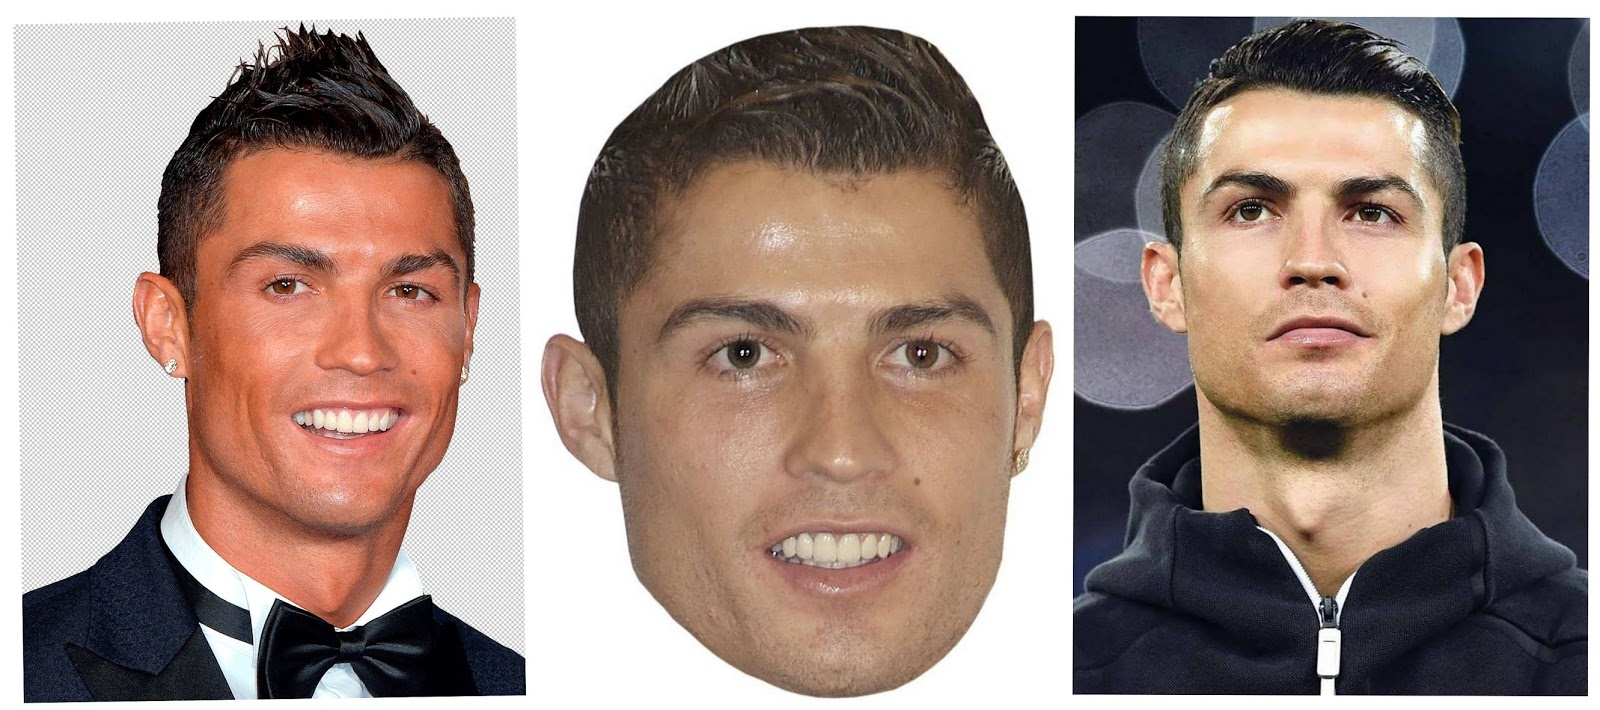 graphic relating to Donald Trump Mask Printable titled Cristiano Ronaldo Free of charge Printable Masks. - Oh My Fiesta! within